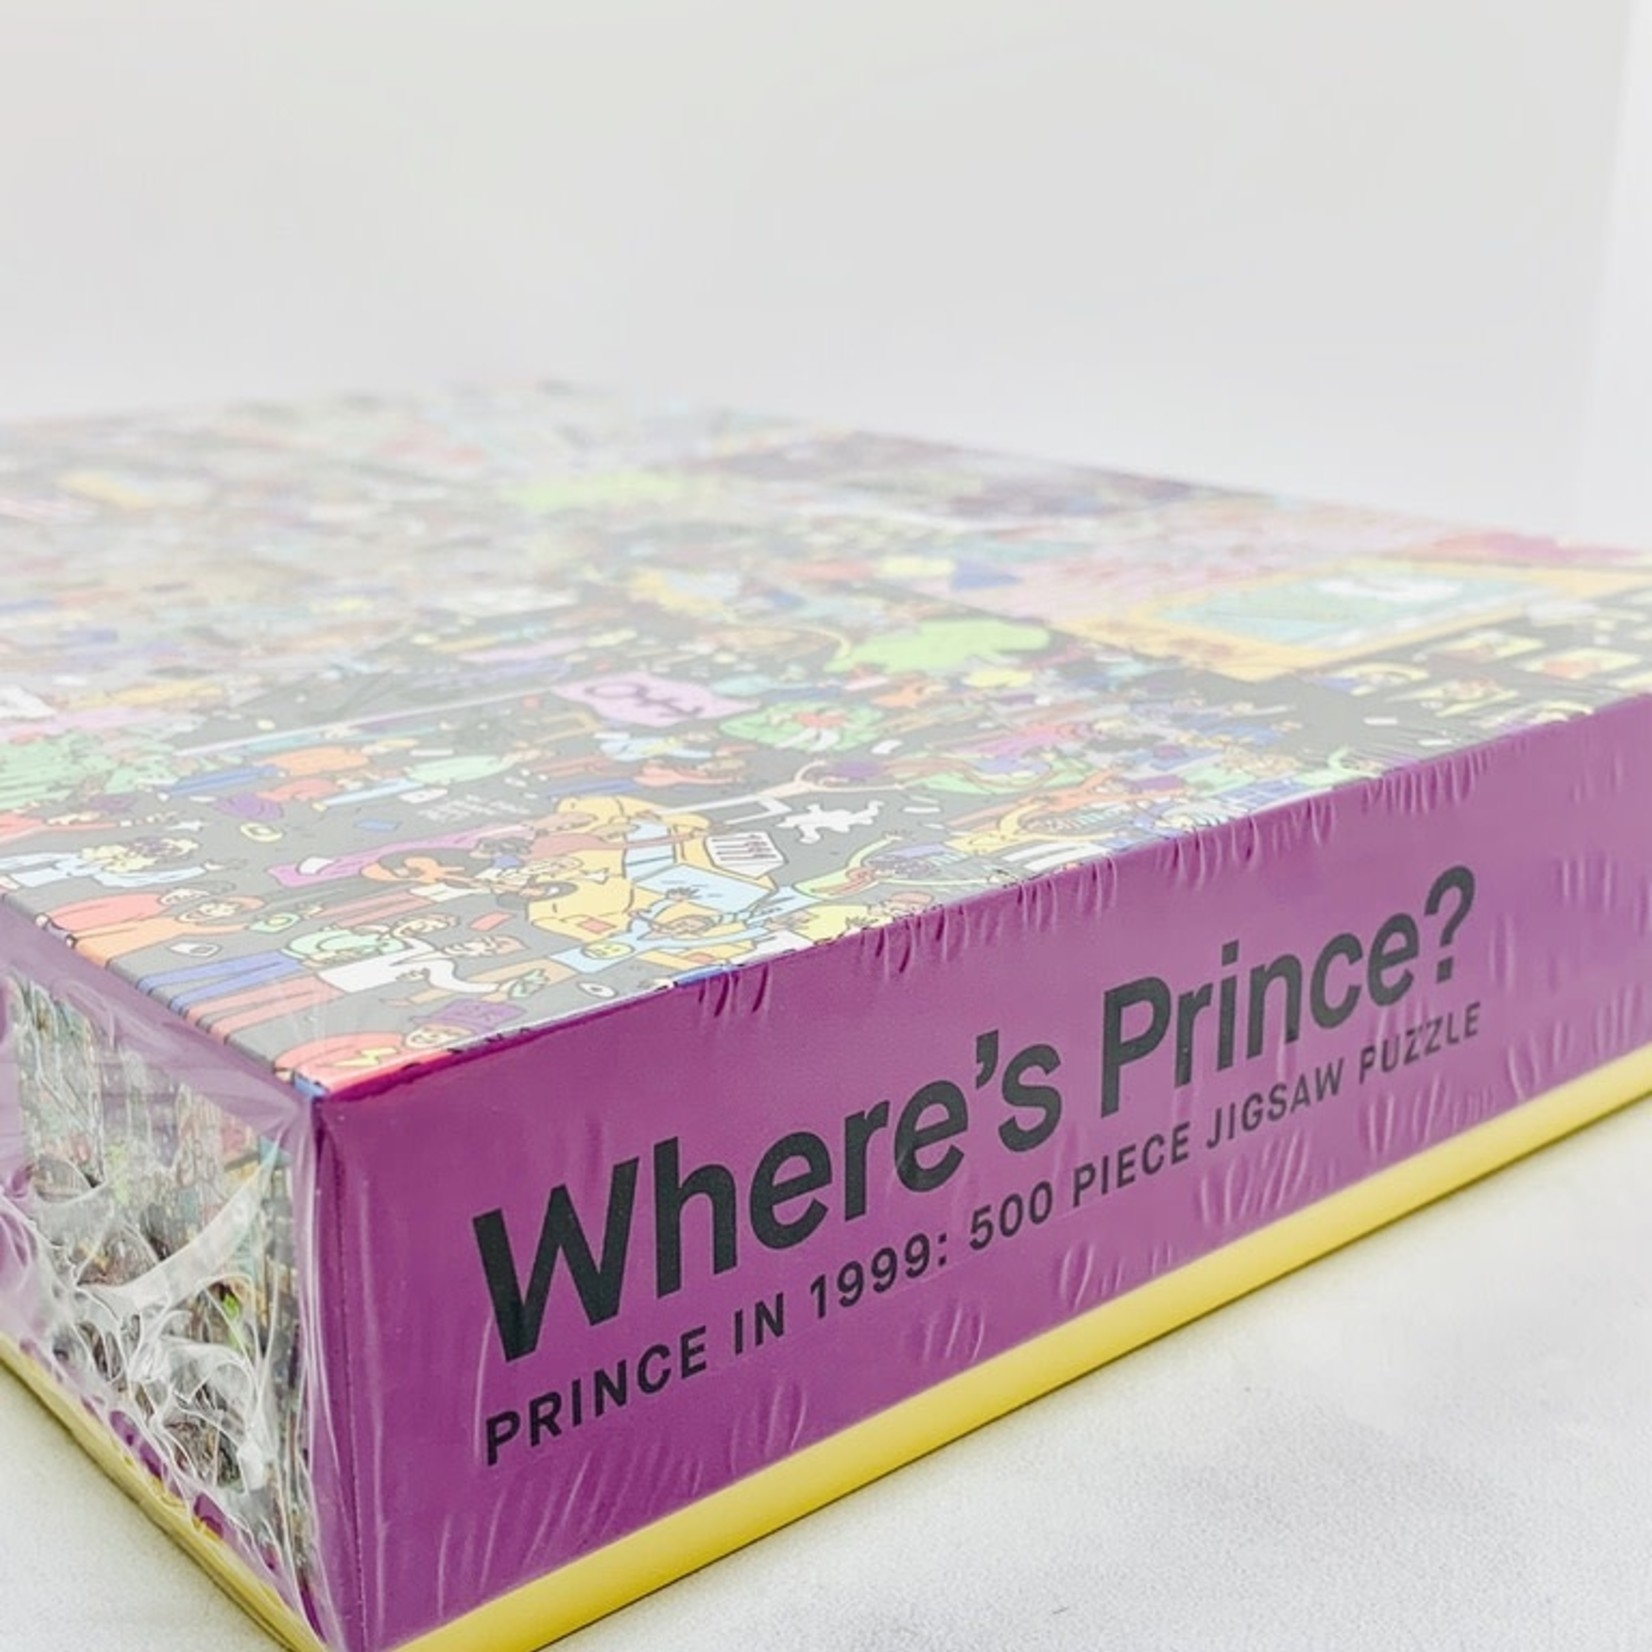 Where's Prince? Prince in 1999 500pc Puzzle